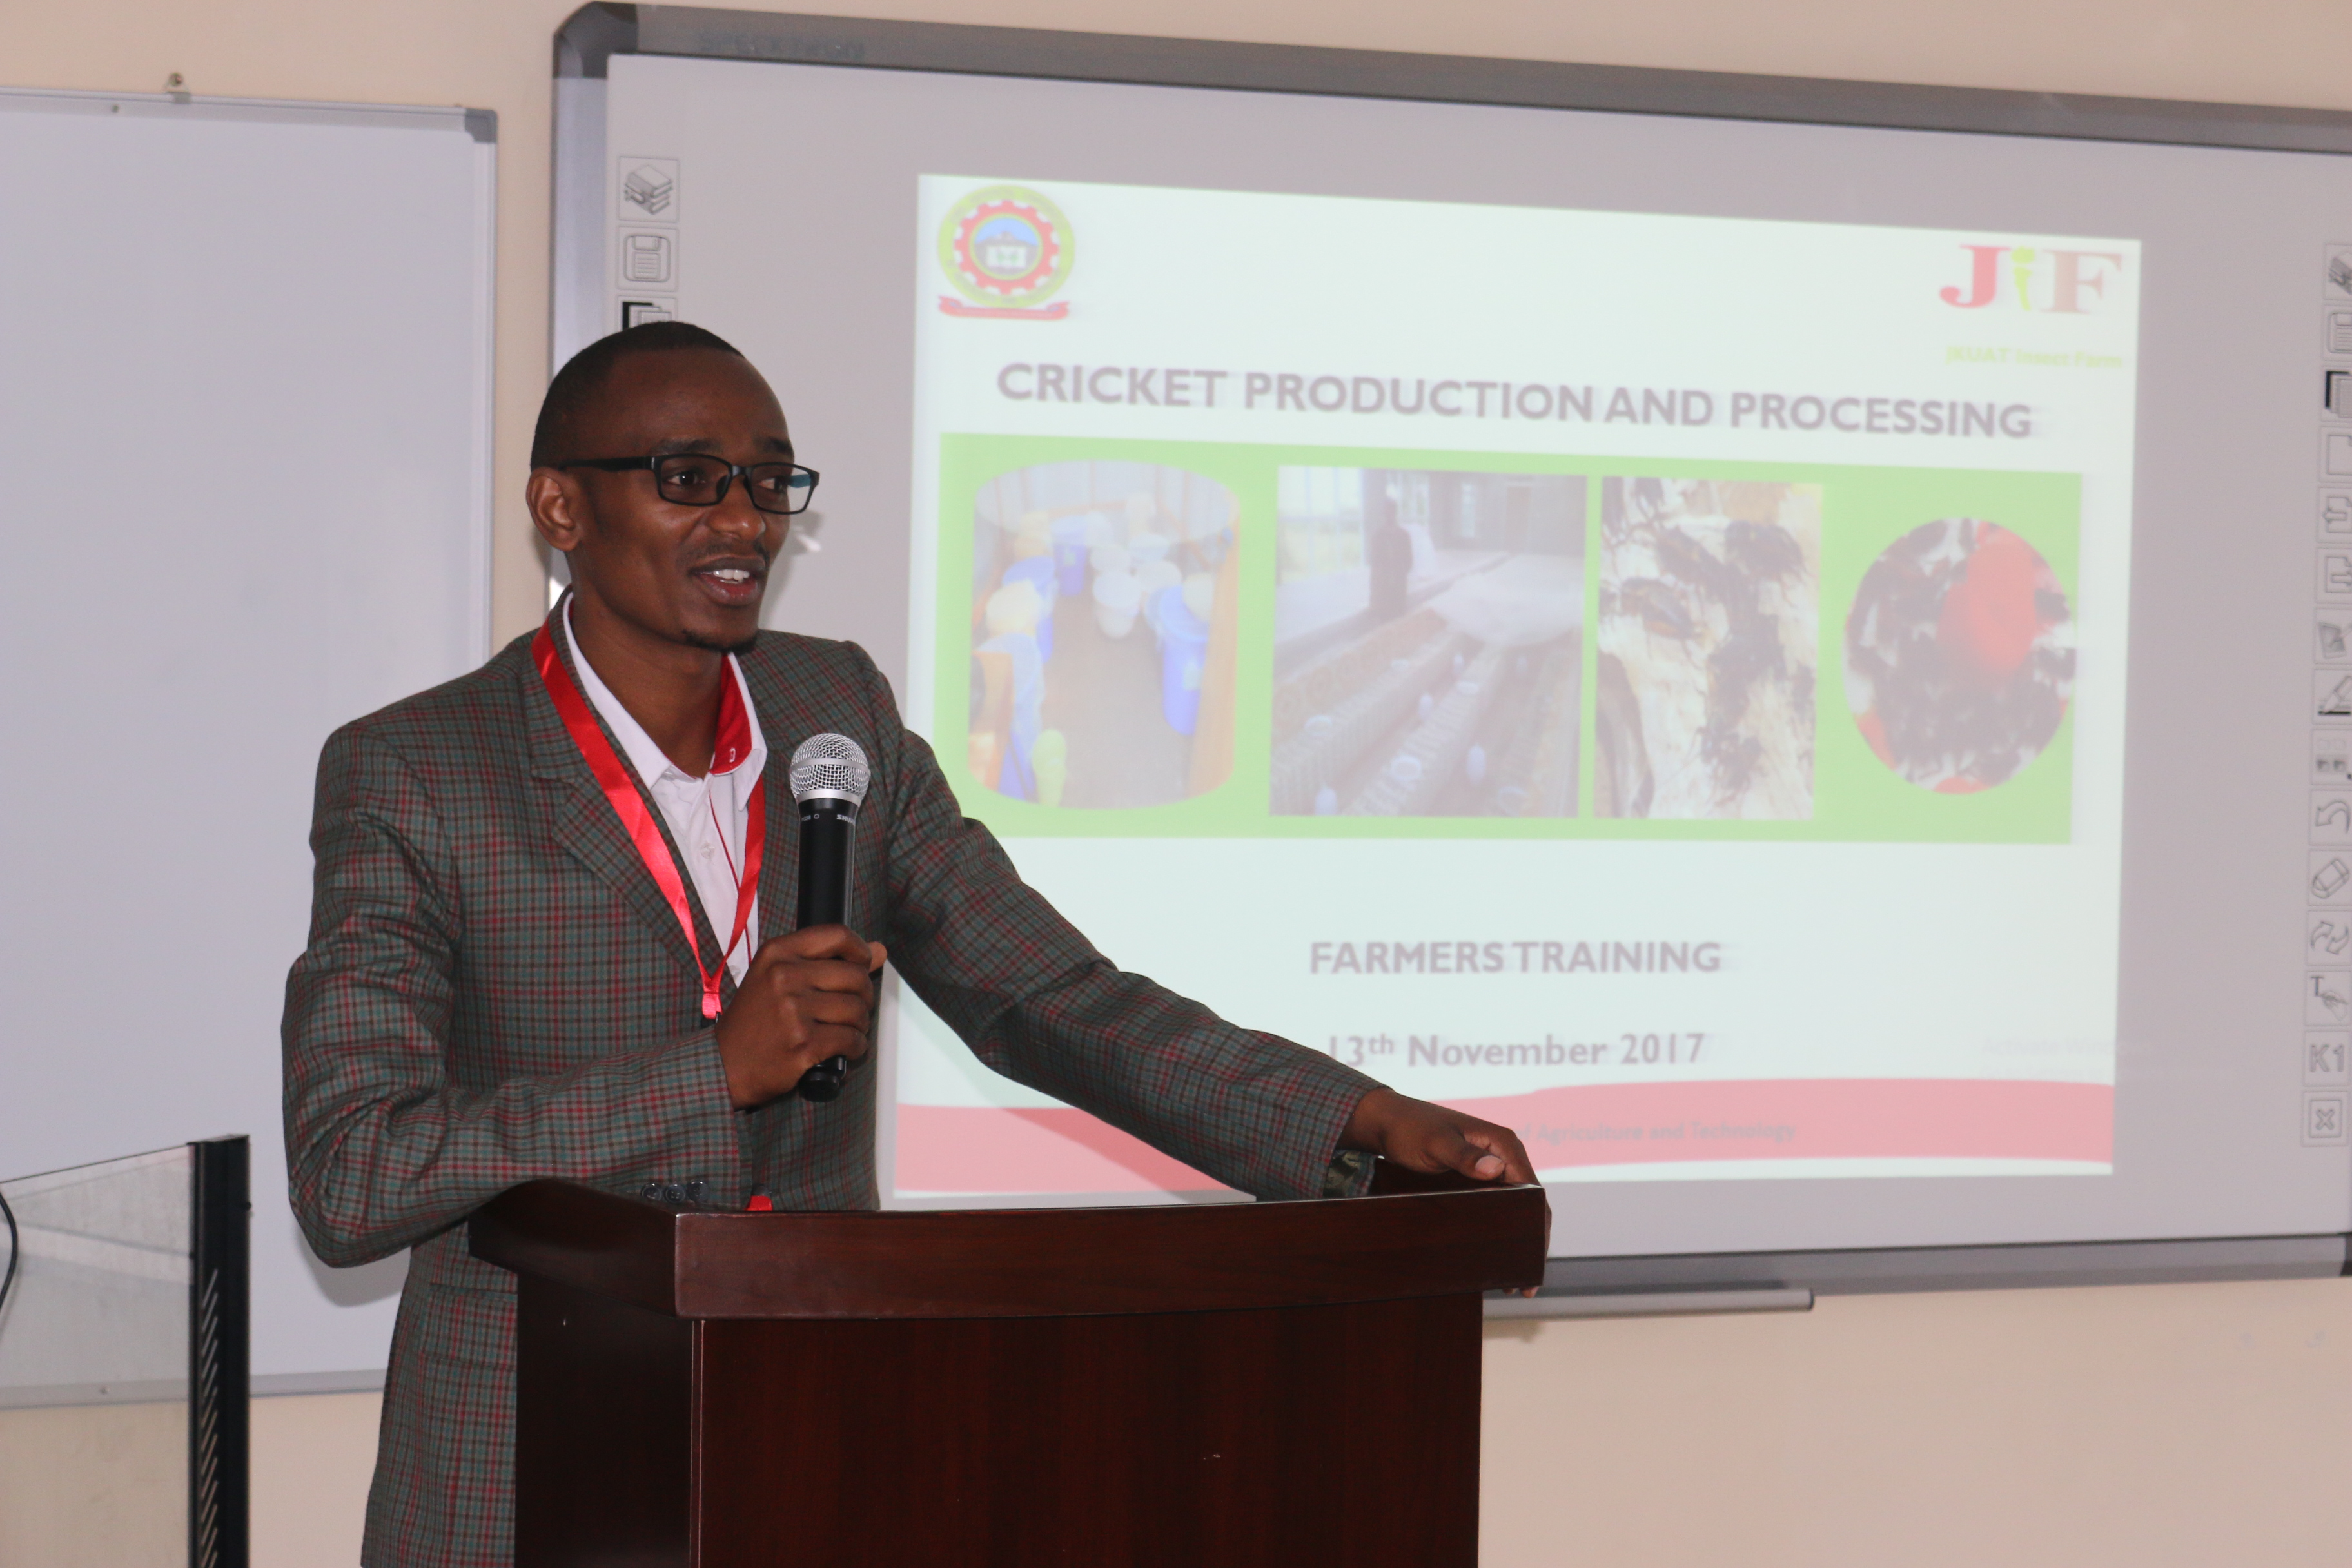 Dr. John Kinyuru conducting a training of farmers from across the country on cricket farming at the University last month.